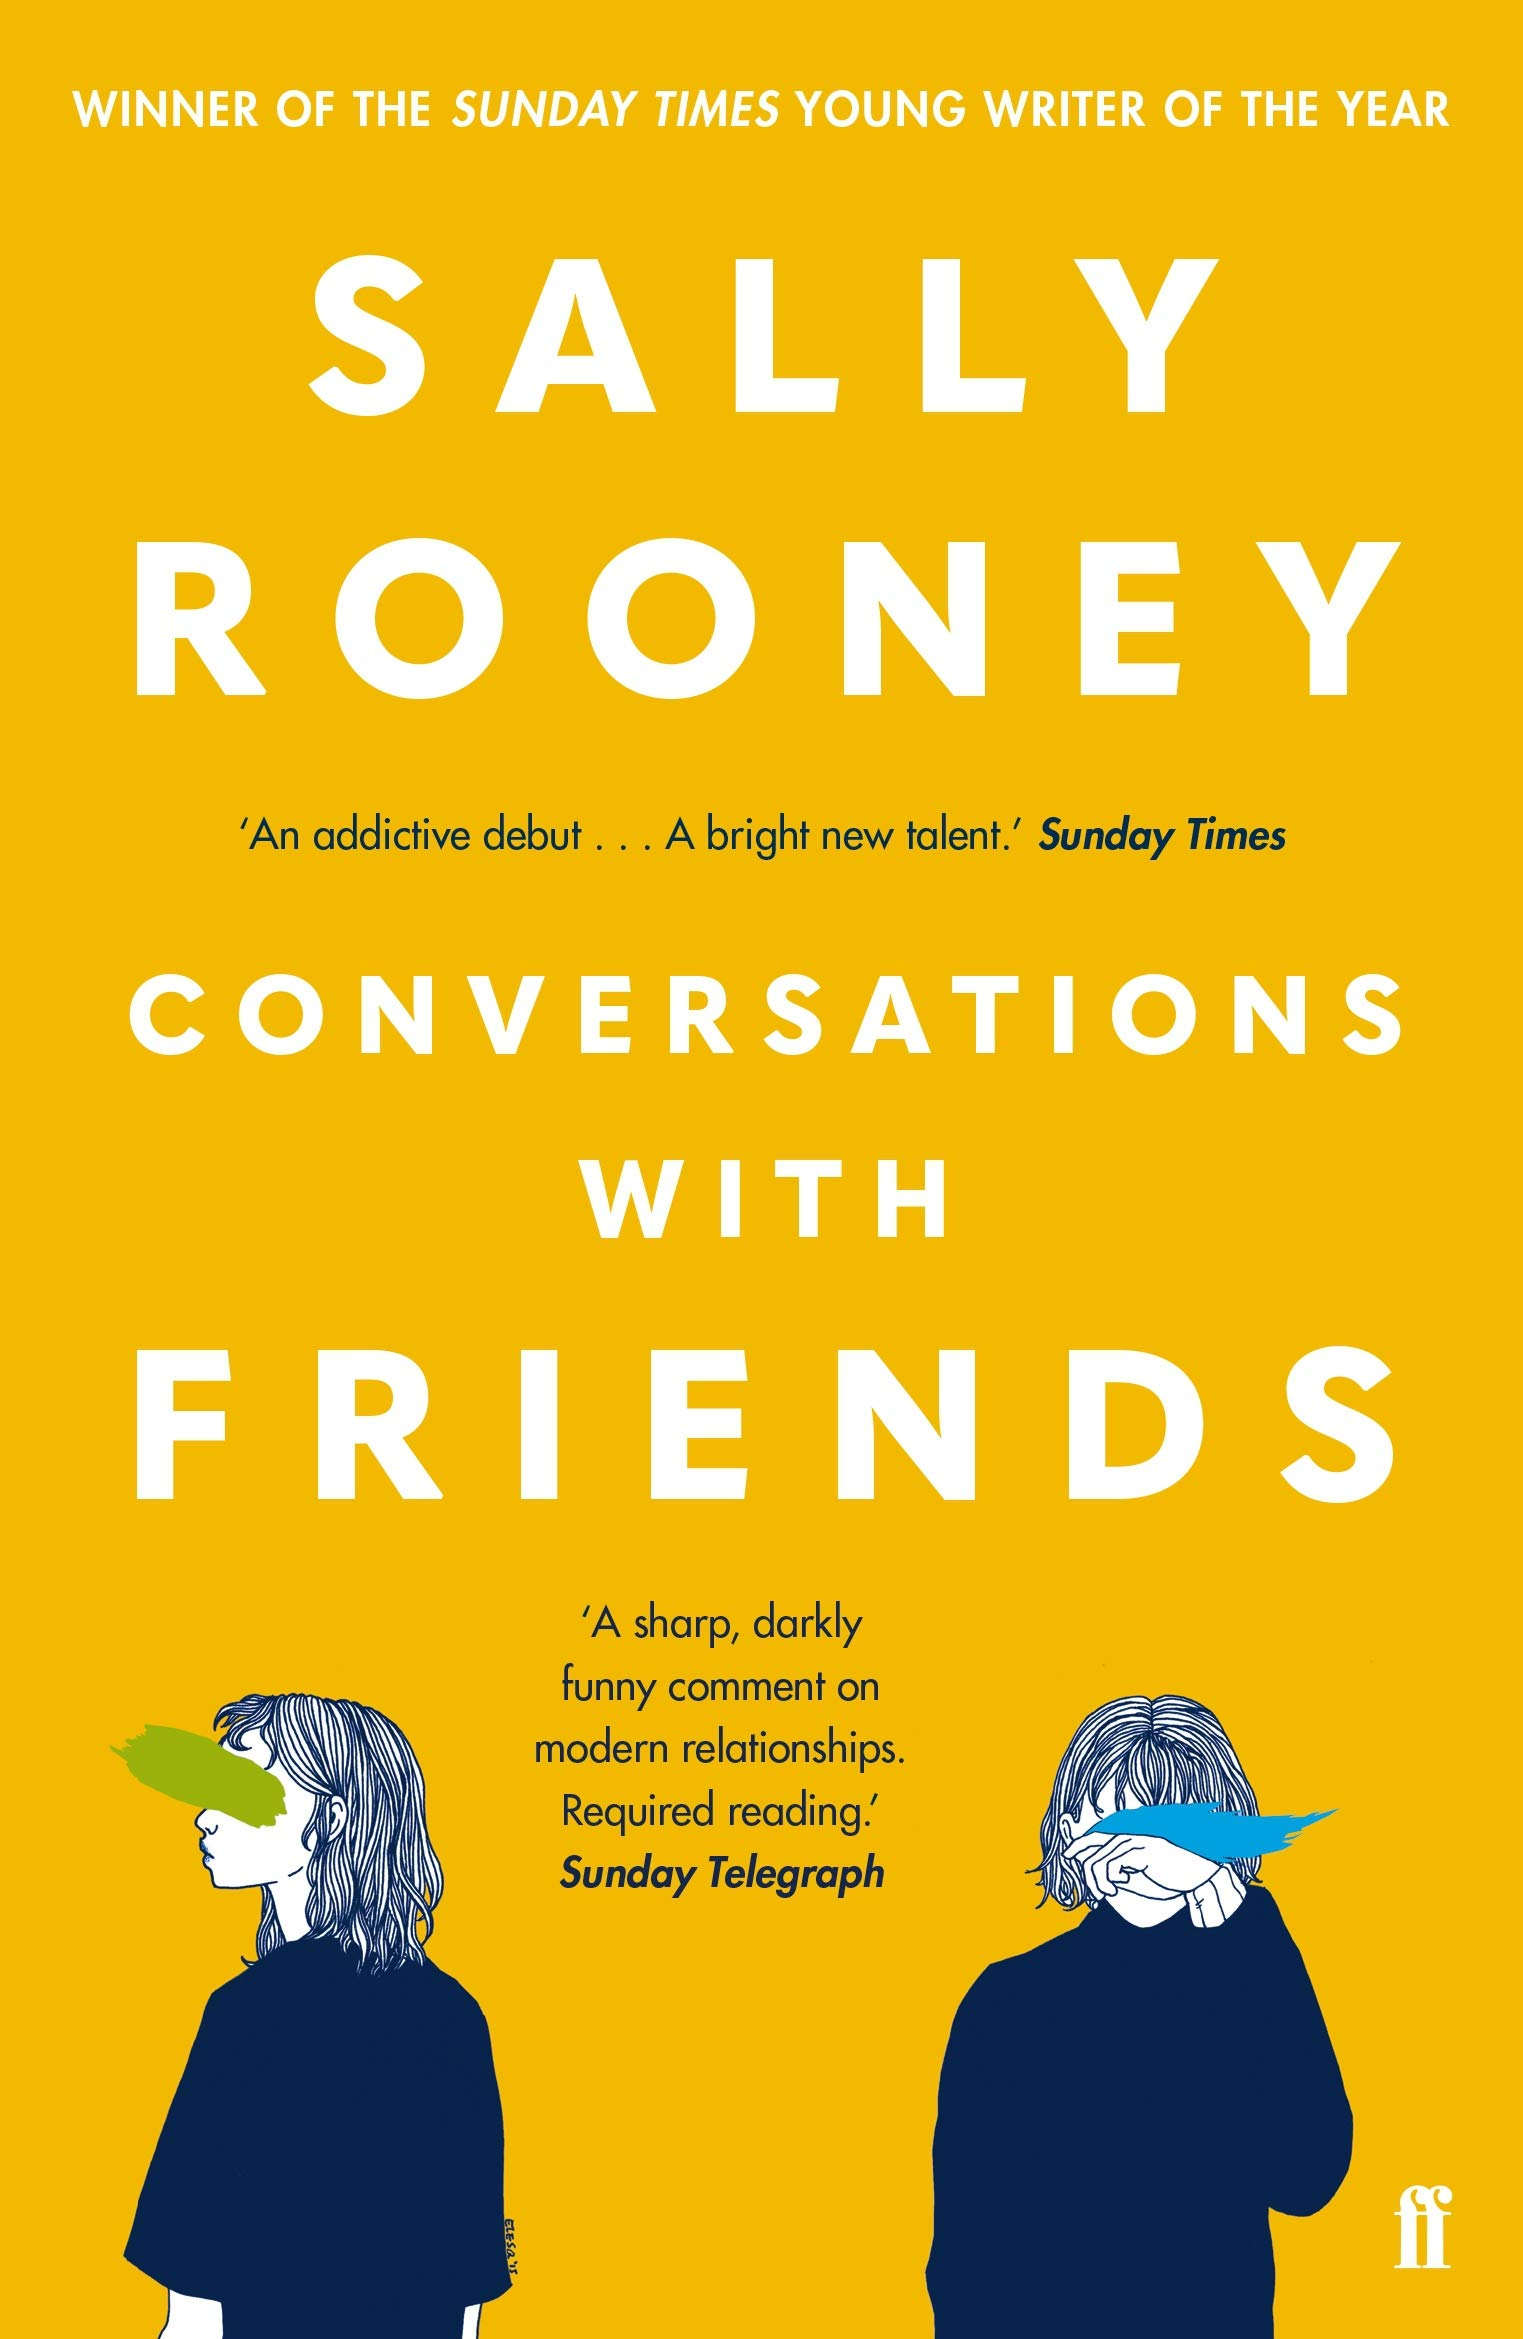 Conversations with Friends (181 POCHE): Amazon.co.uk: Rooney, Sally:  9780571333134: Books